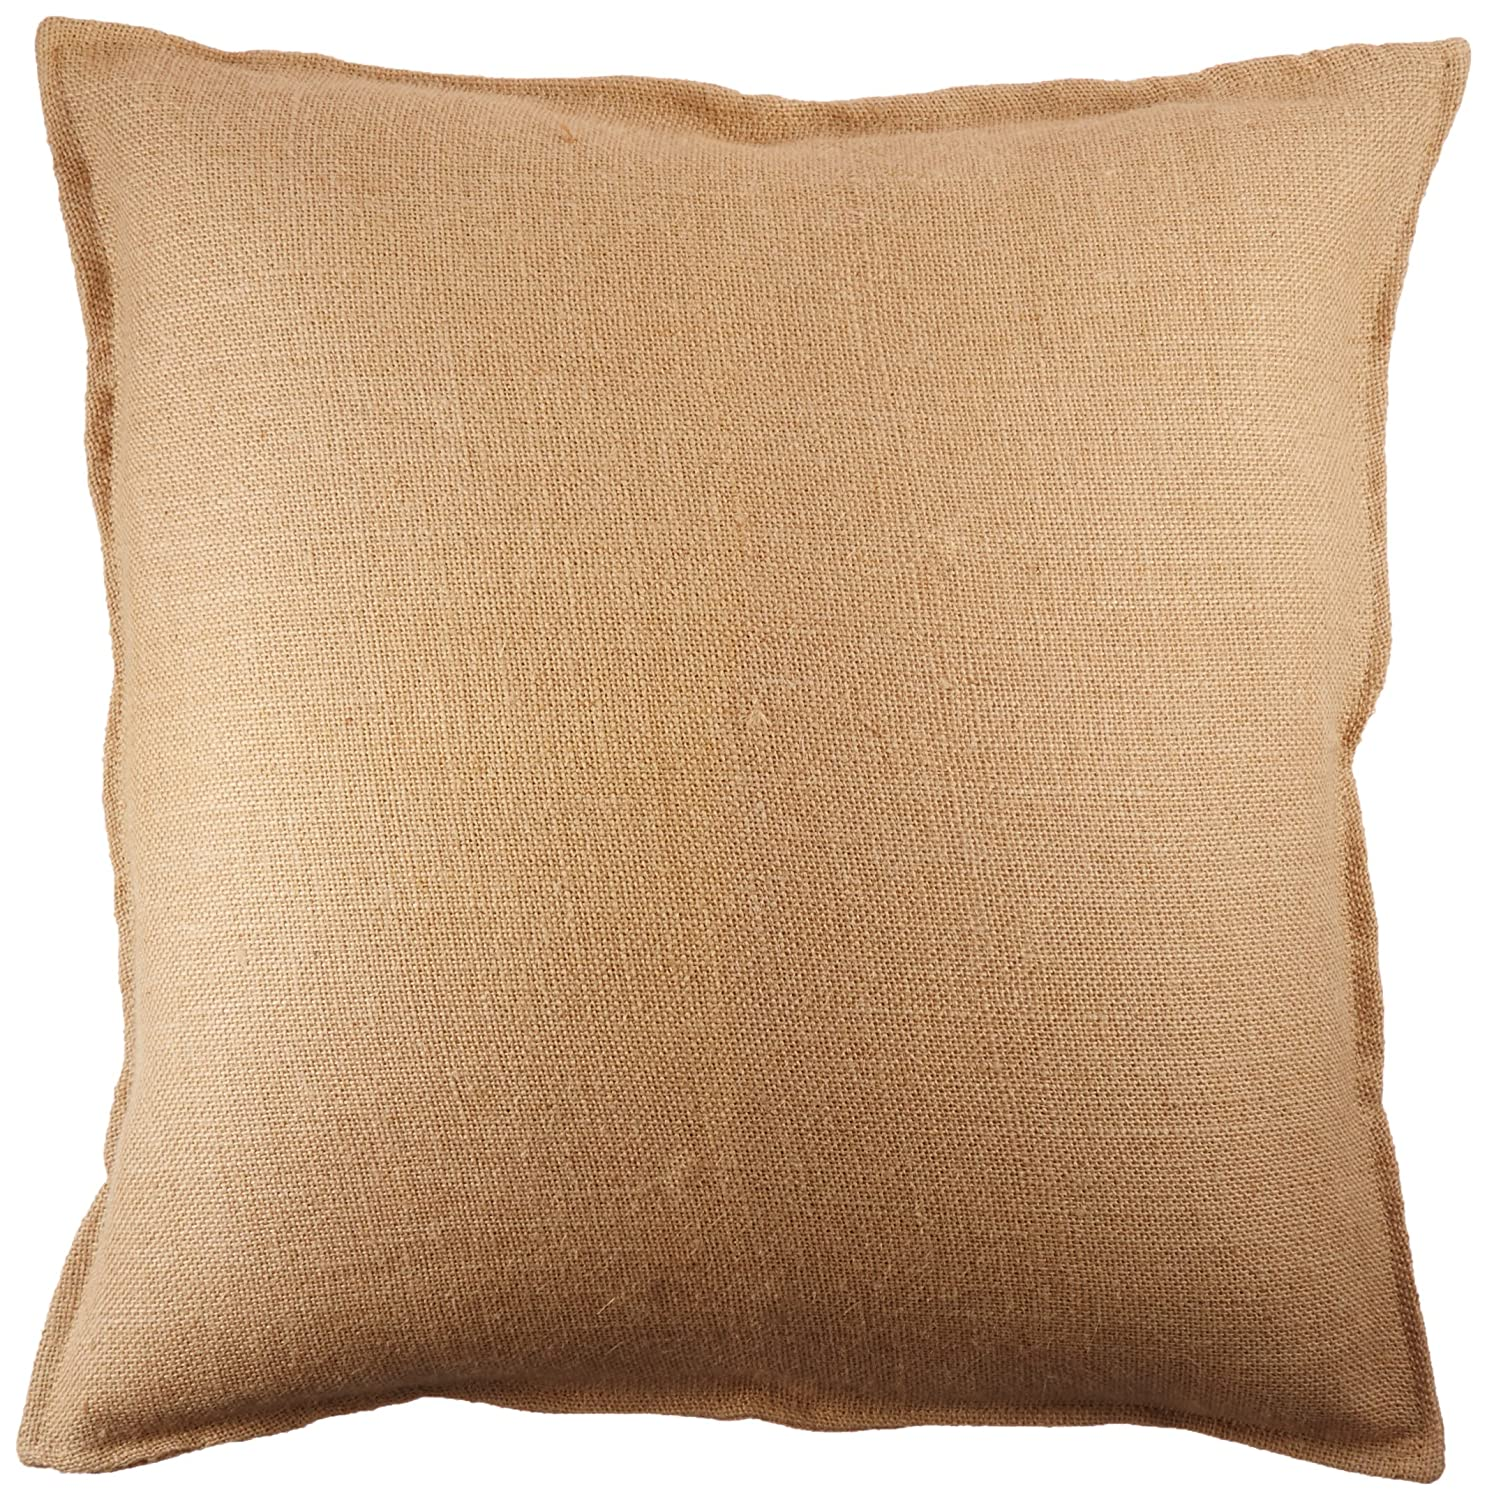 Amazoncom Washed Jute Burlap Plain Pillow Cover 20 x 20 with